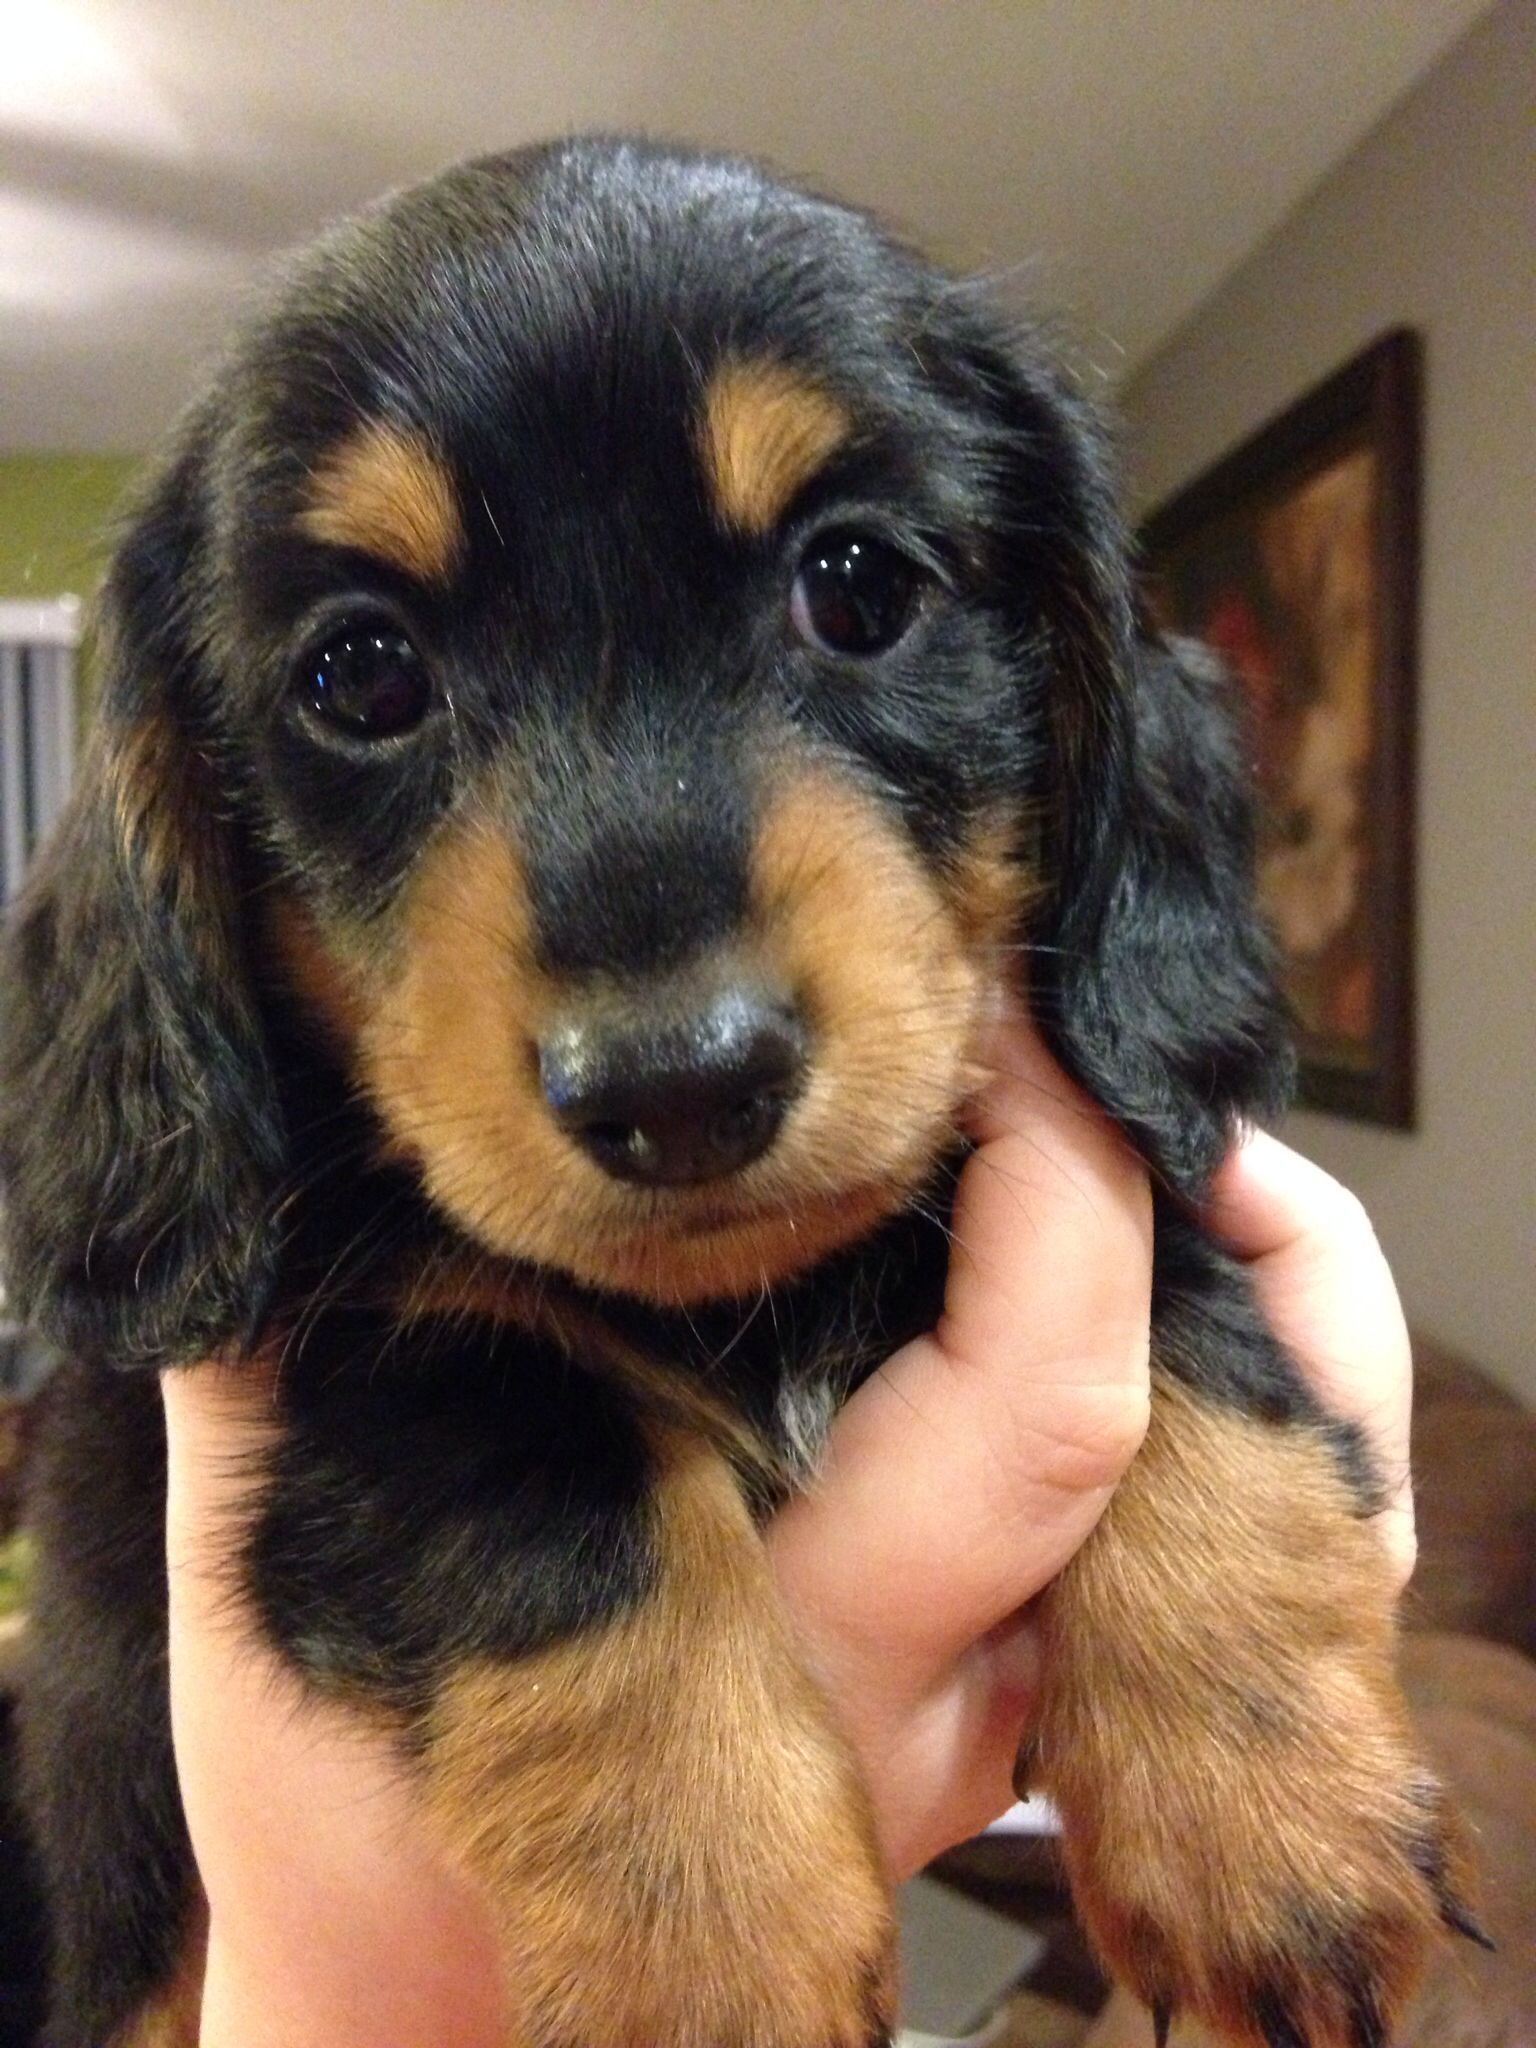 Another One Of Our Dachshund Puppies From Our 2nd Litter The Mom